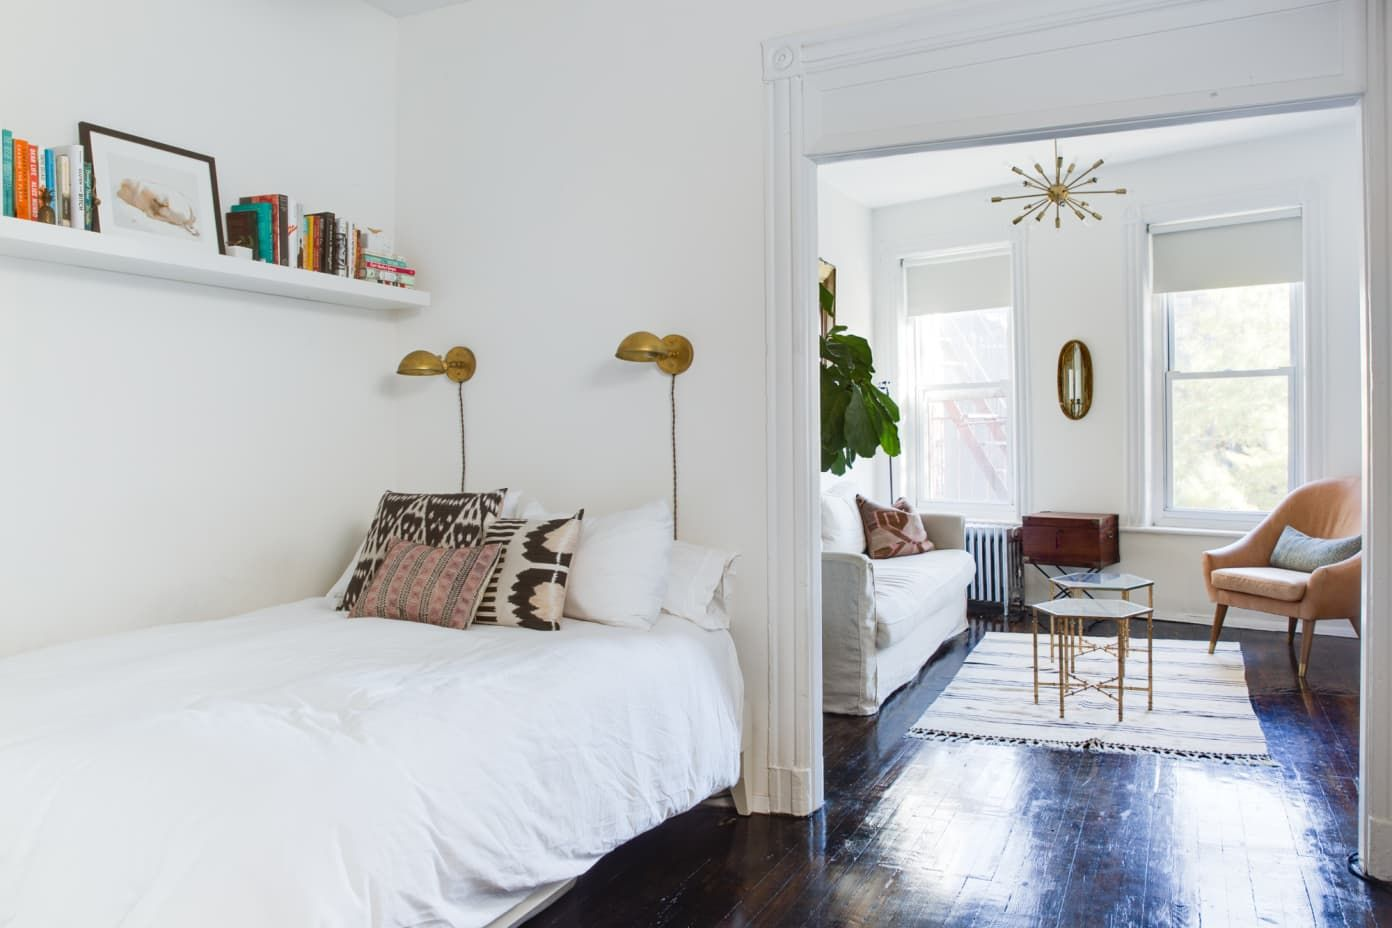 9 Sneaky Ways To Add More Storage To Small Spaces In 2020 Small Room Design Small Bedroom Small Room Bedroom